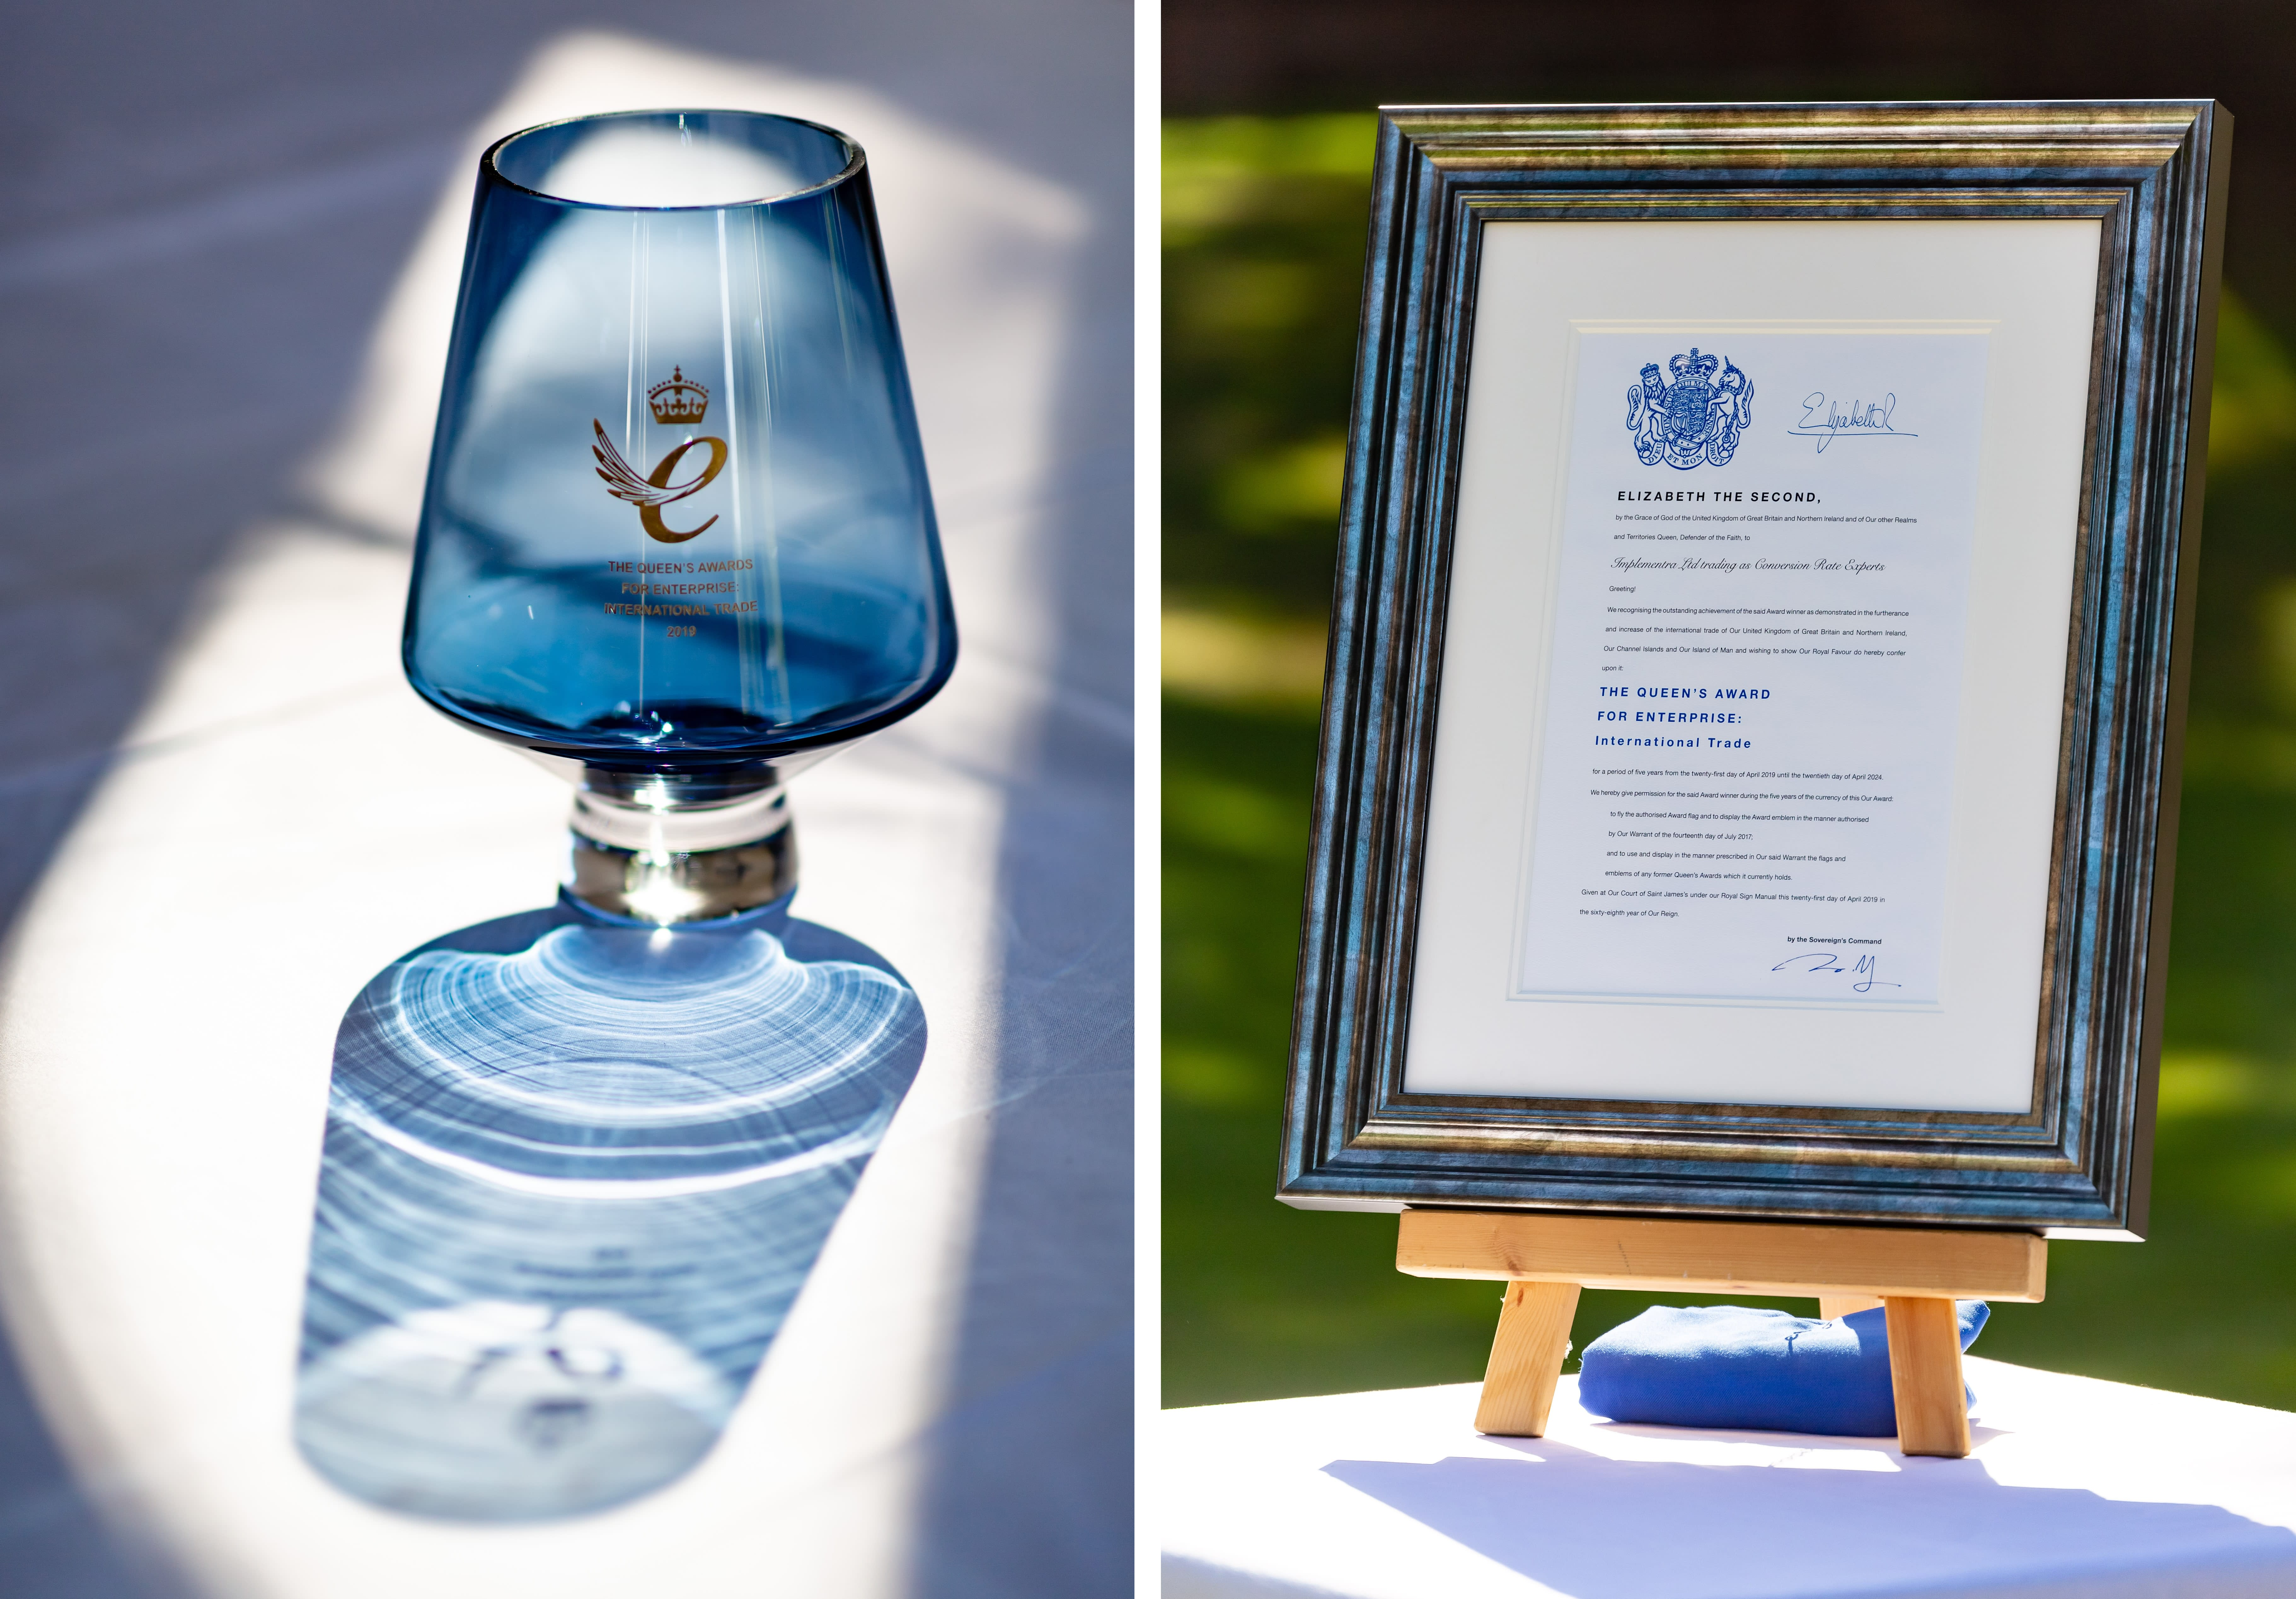 The royal crystal and certificate, which now has pride of place in our offices.